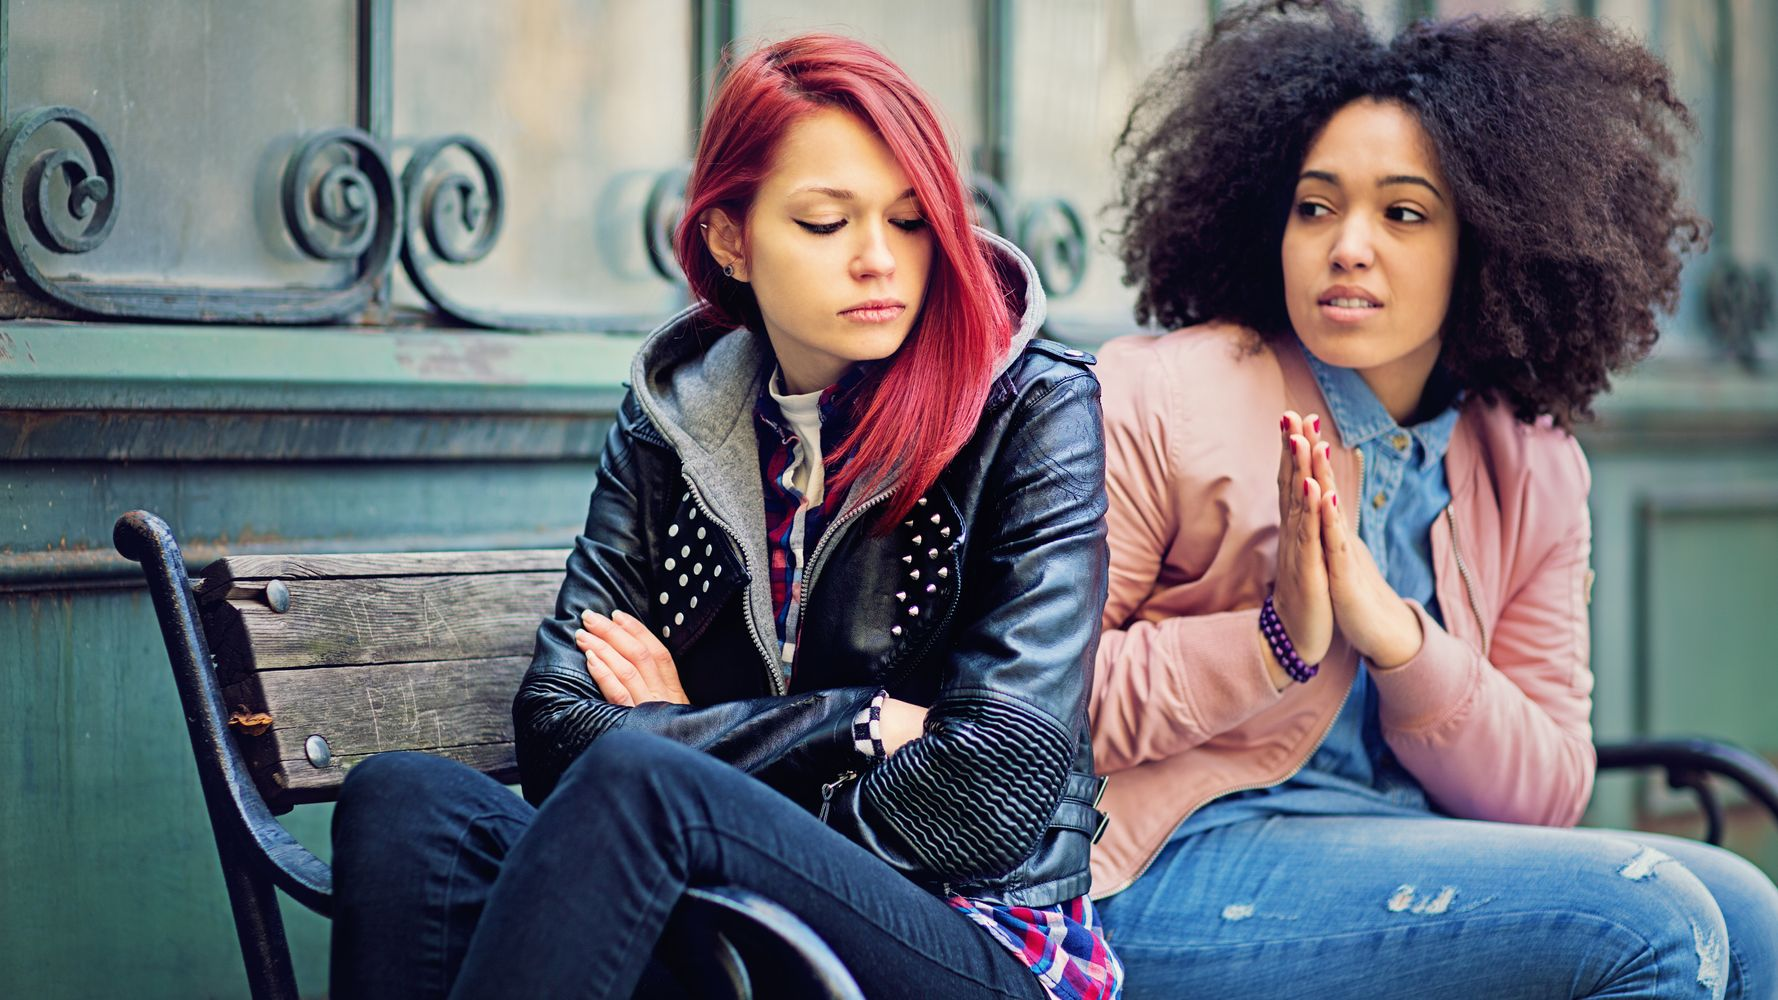 7 Glaring Signs You Need To Break Up With A Toxic Friend